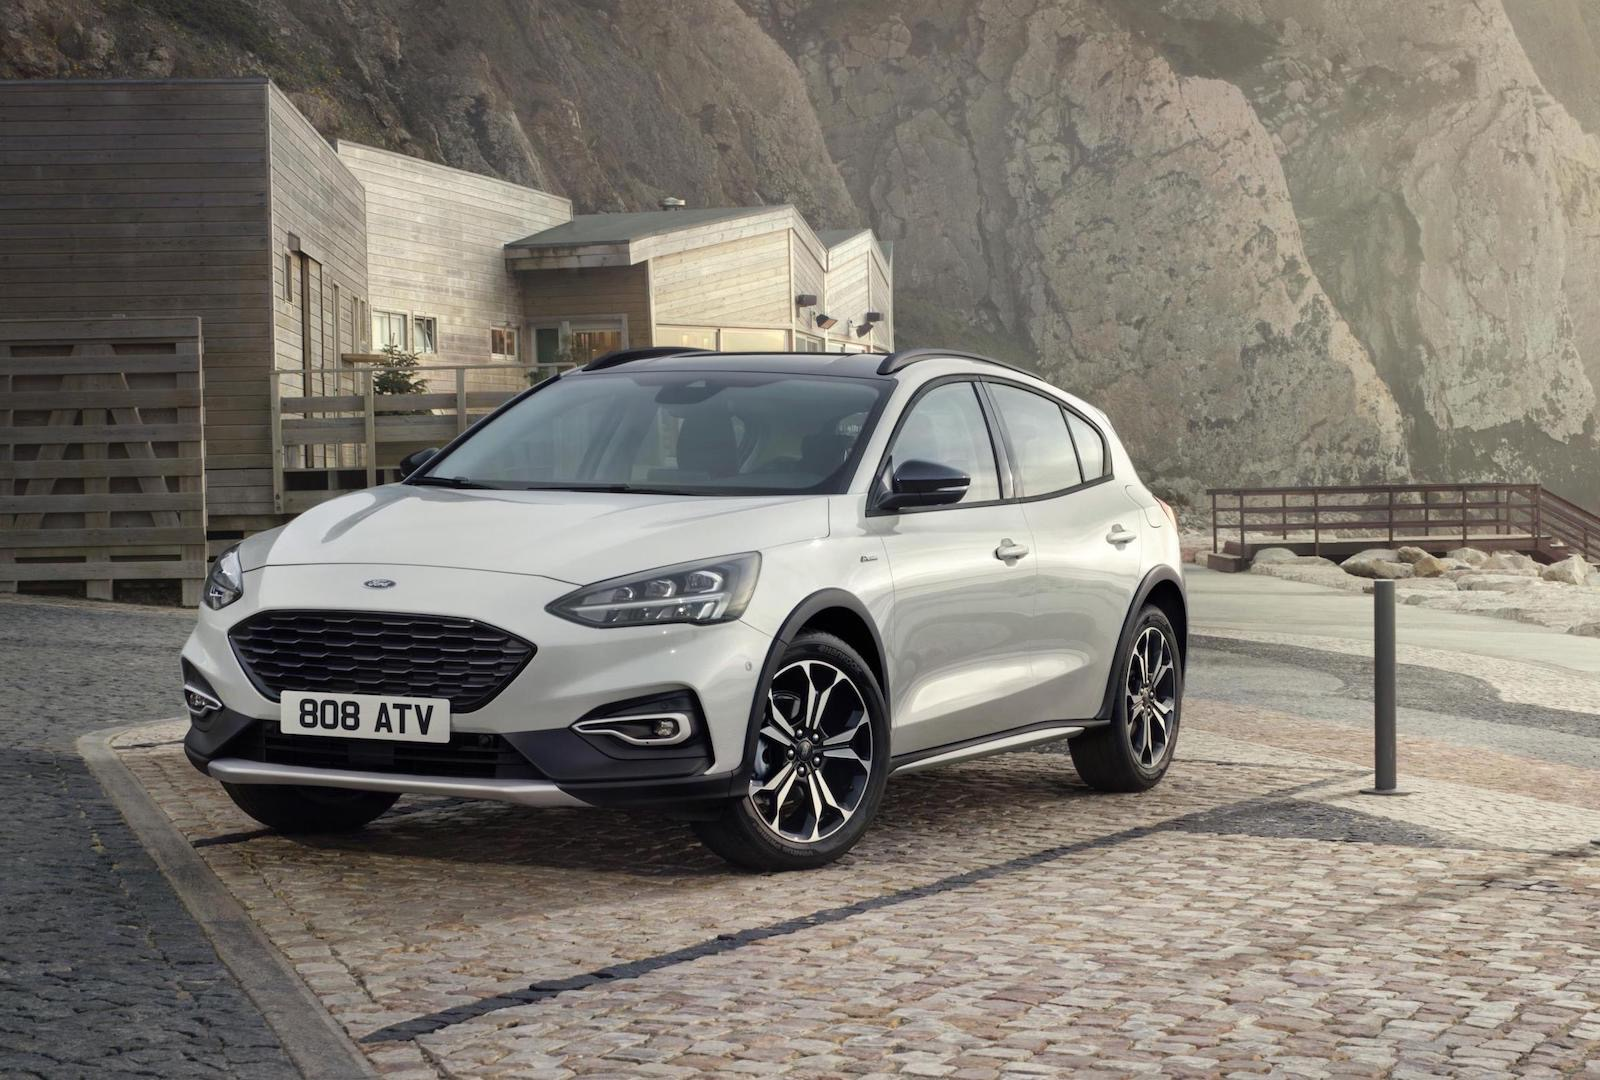 2019 ford focus unveiled active crossover st line added performancedrive. Black Bedroom Furniture Sets. Home Design Ideas